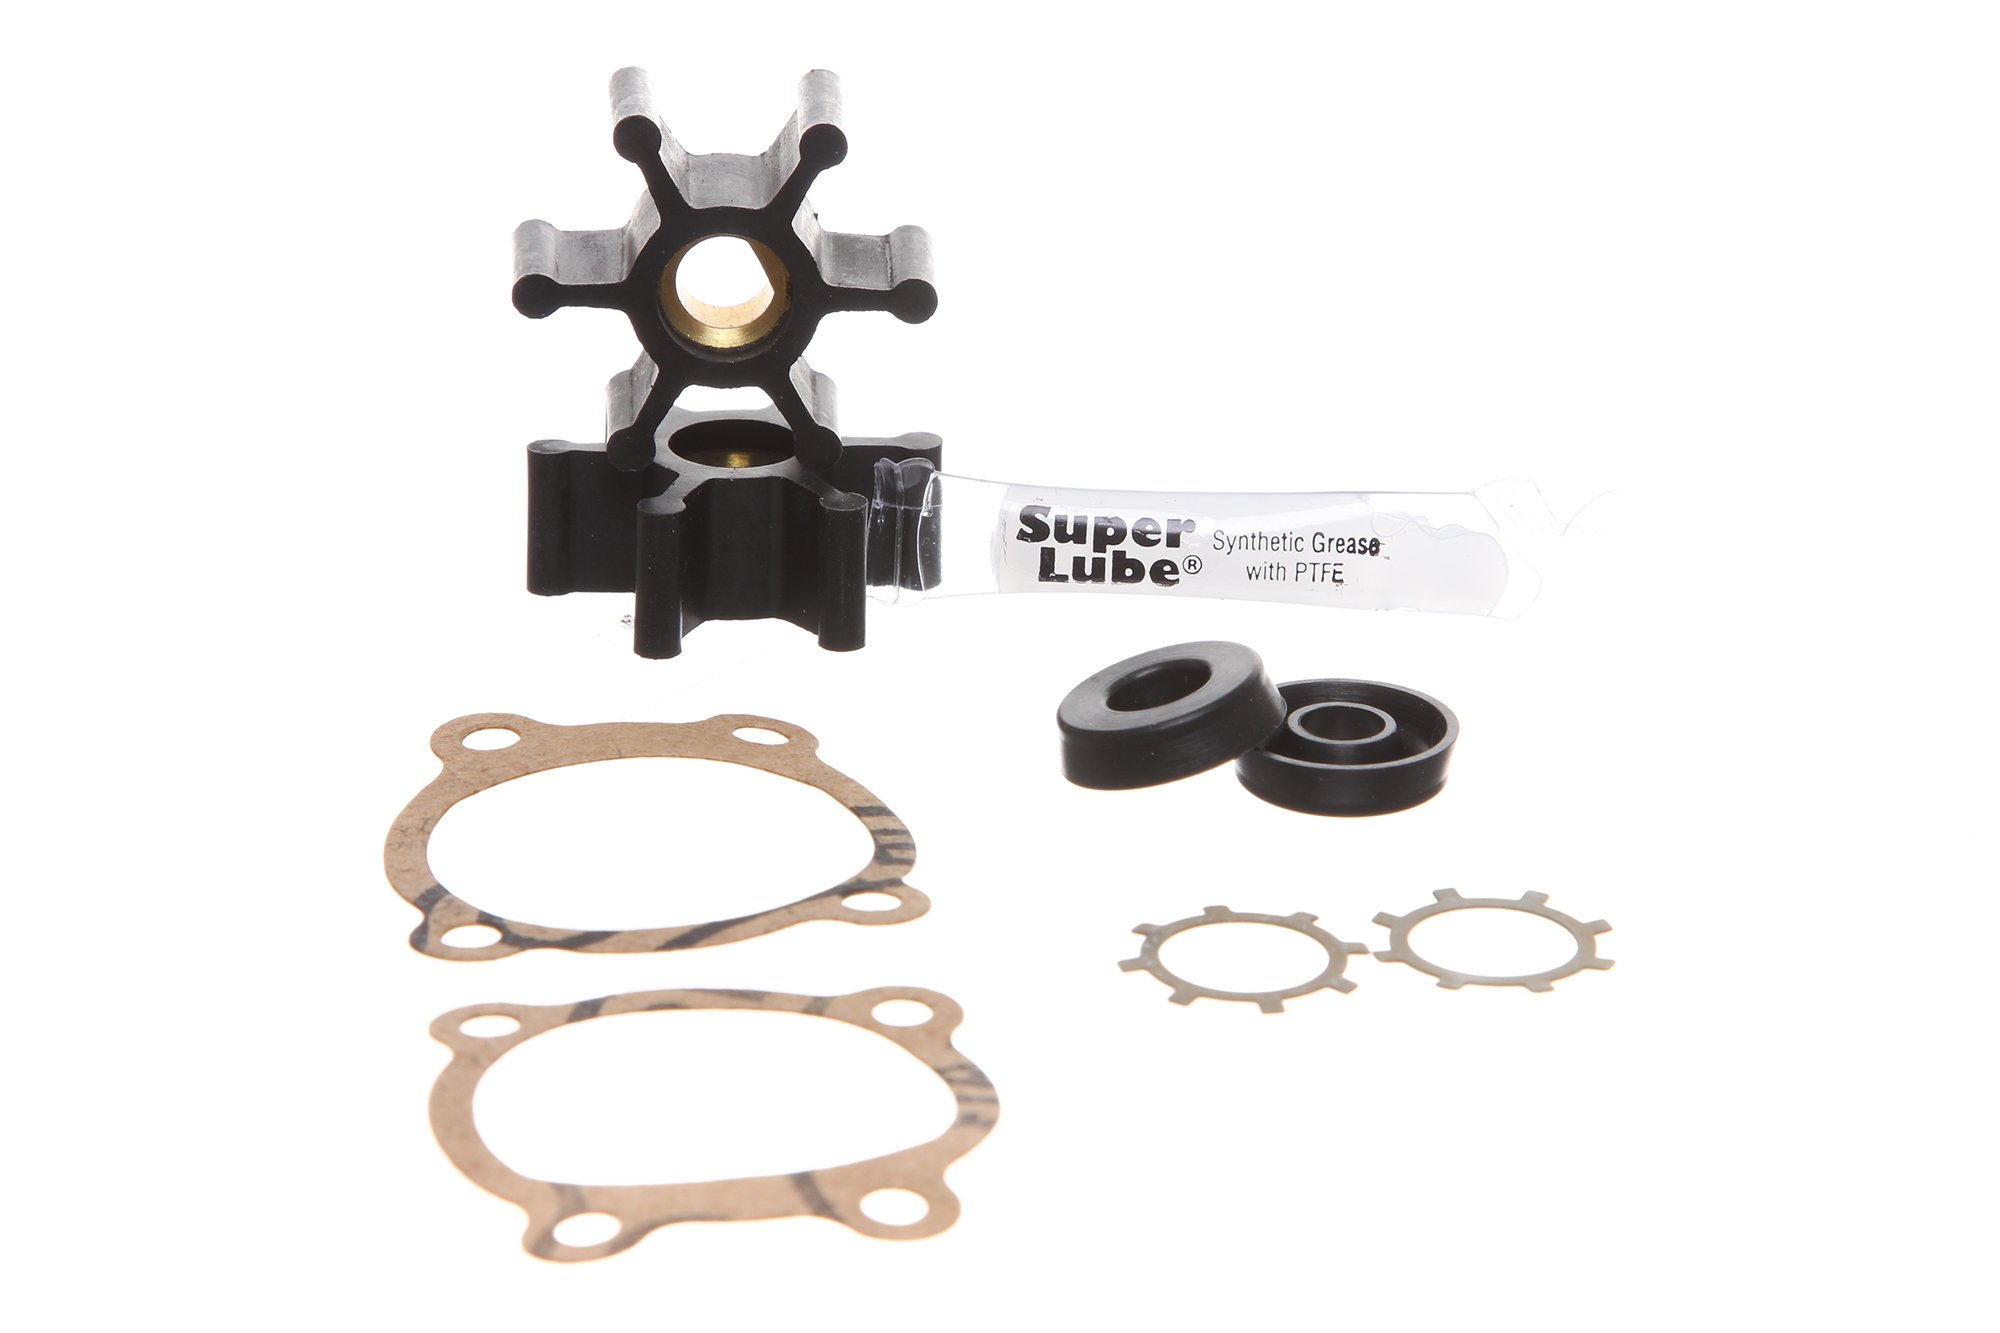 Utility Water Transfer Pump Impeller Replacement Kit